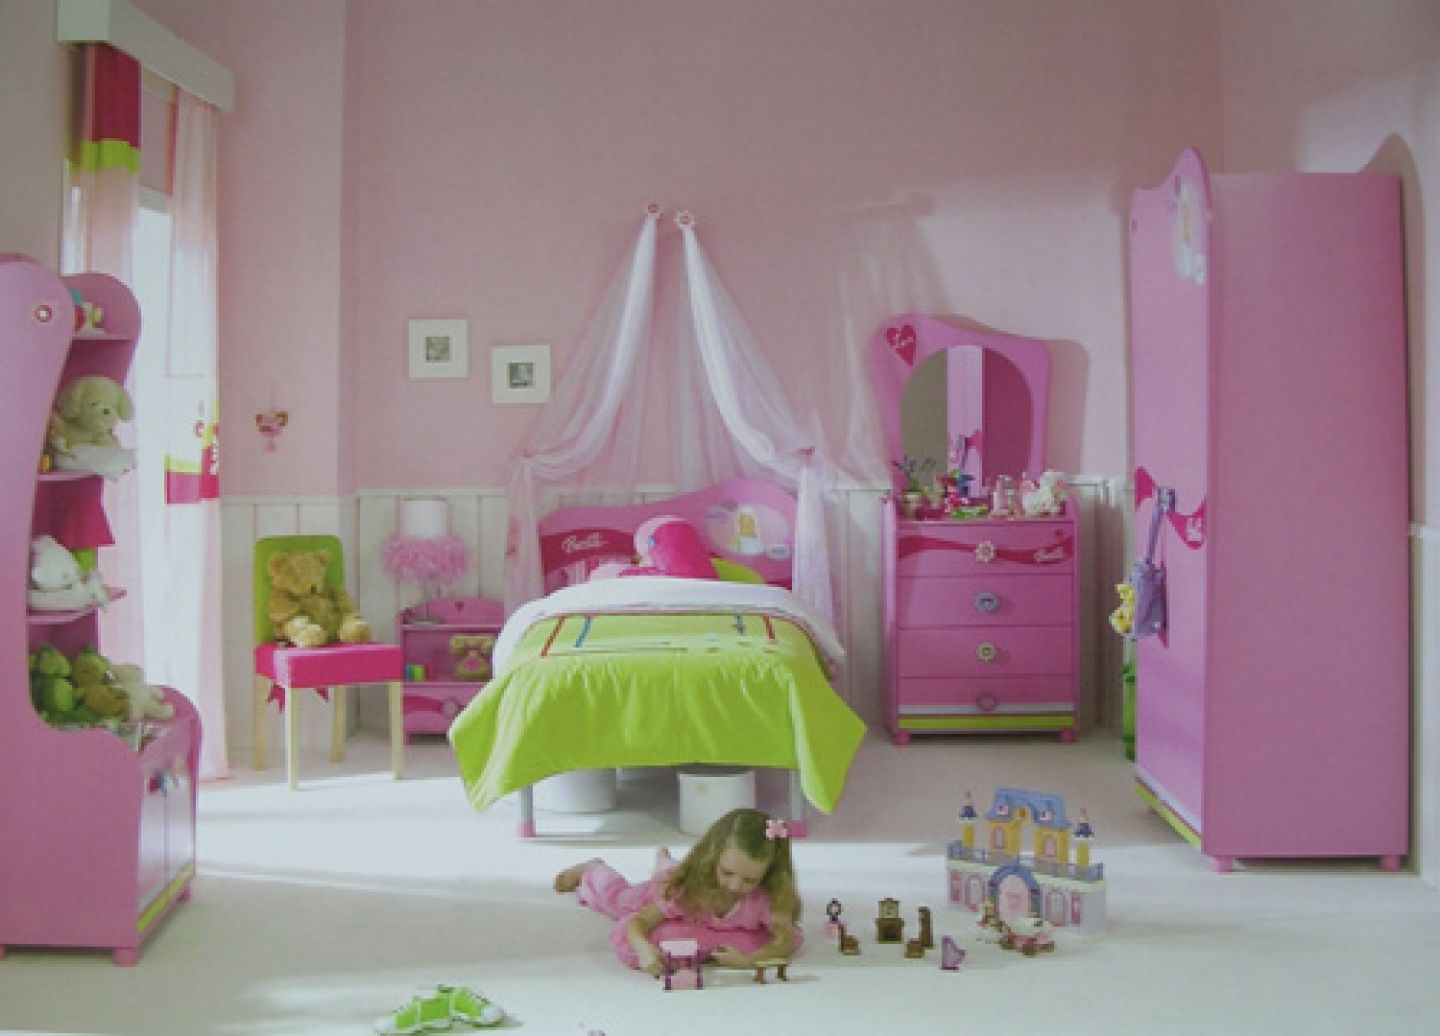 Bedroom Decorating Ideas For Teens Part - 34: Kids Bedroom Ideas : Kids Bedroom Pinky Decoration Inspiration Girls Bedroom  Sets Decorating Ideas For Little